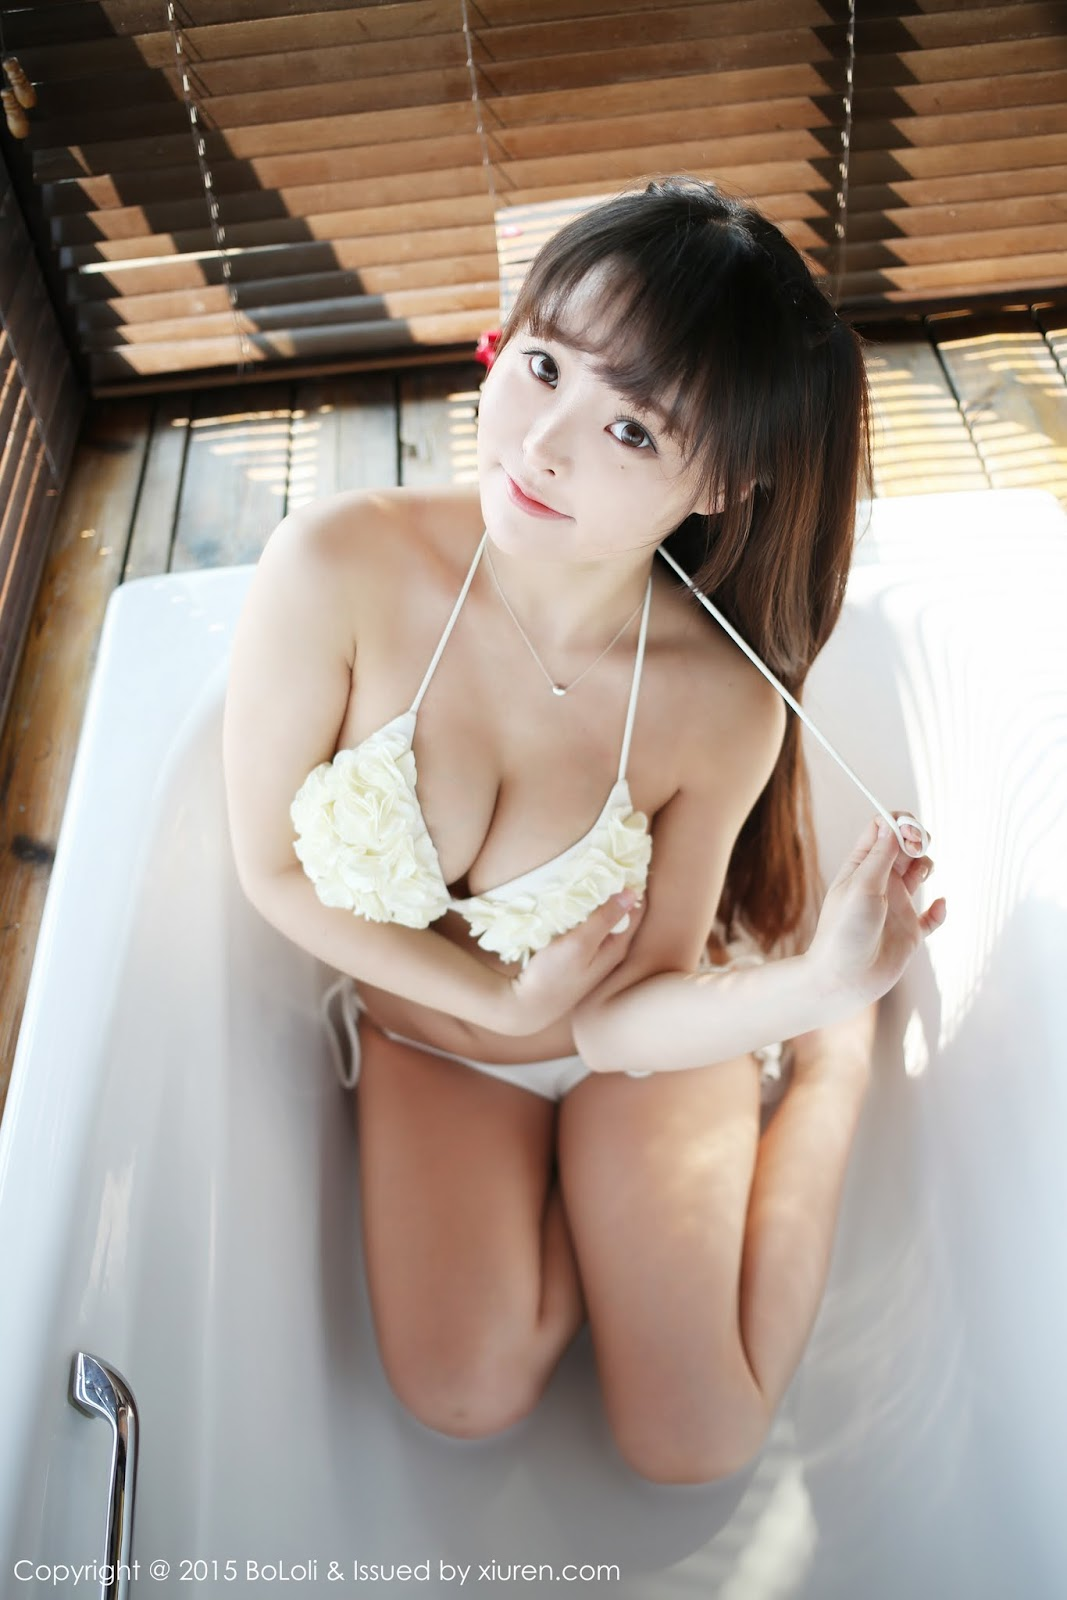 0043 - Sexy Girl Model BOLOLI VOL.5